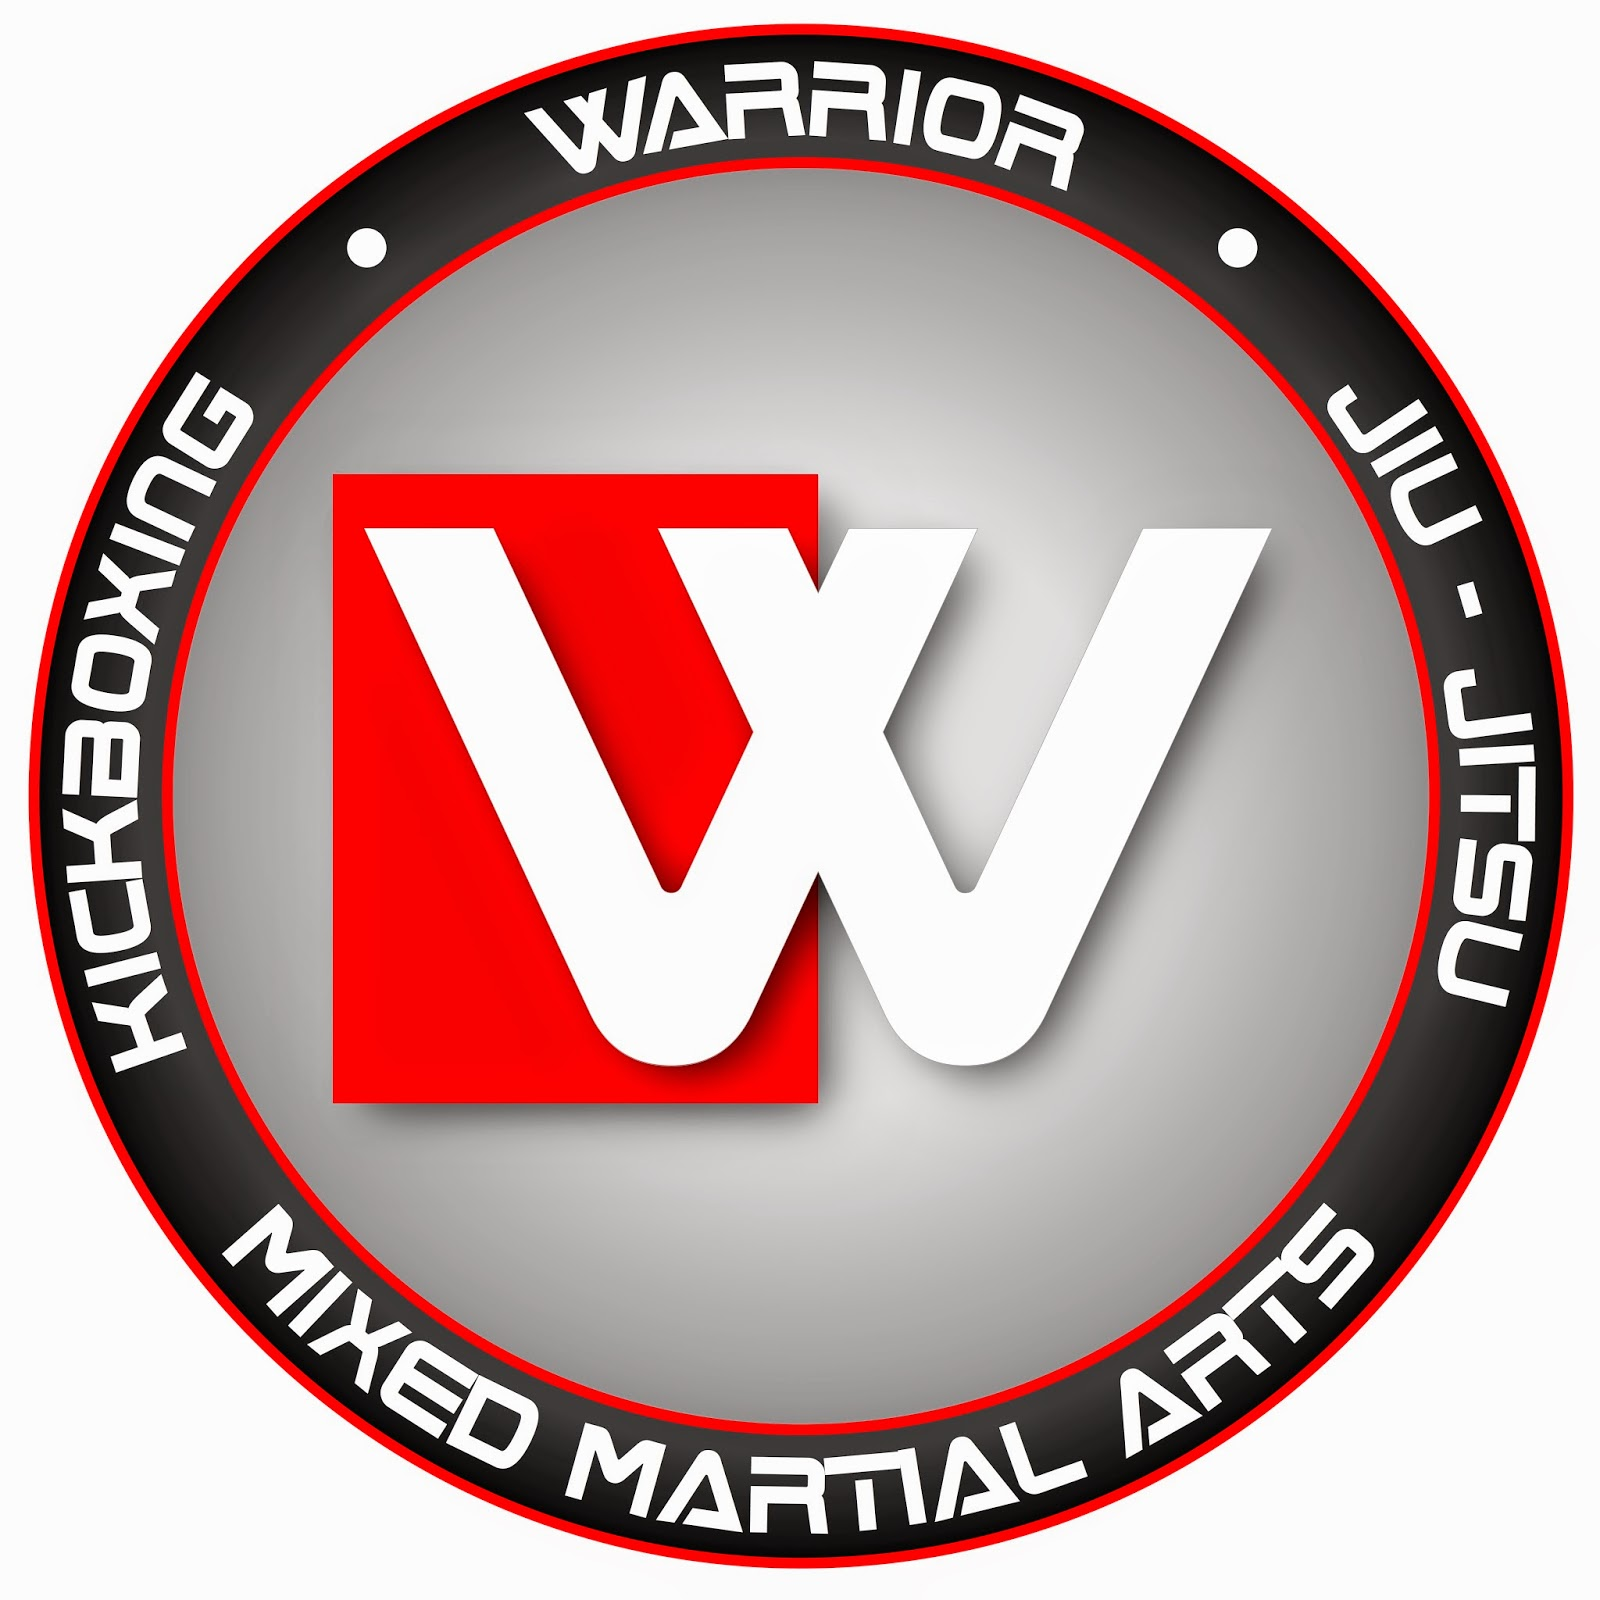 Warrior Mixed Martial Arts - photo